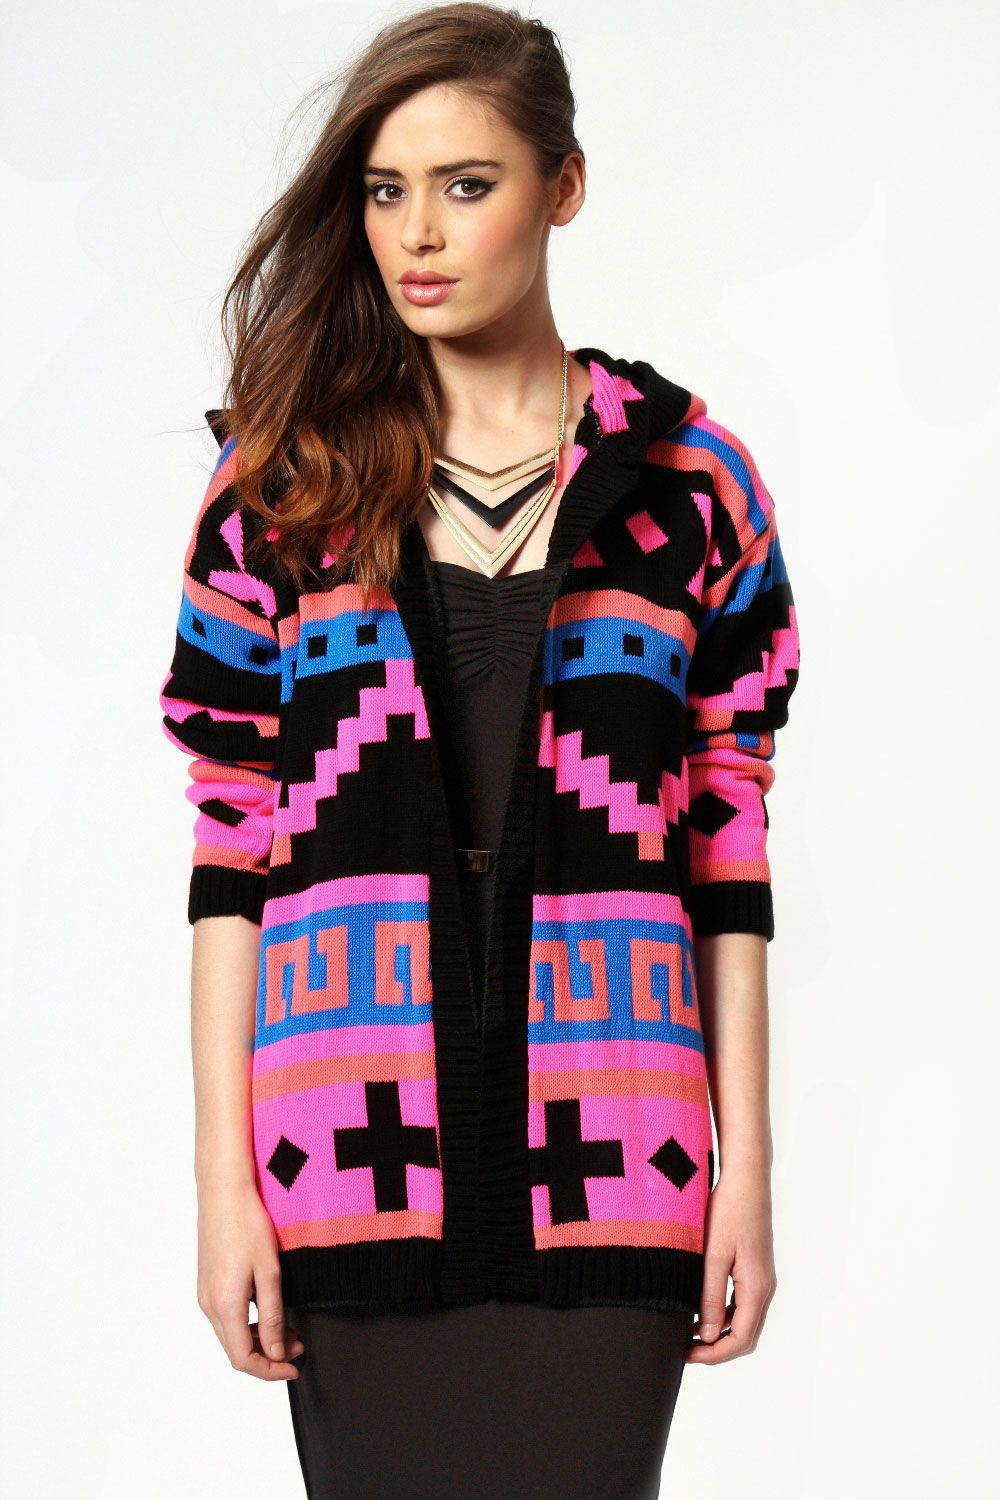 Jessie Neon Patterned Hooded Cardigan | Patterns | Pinterest ...